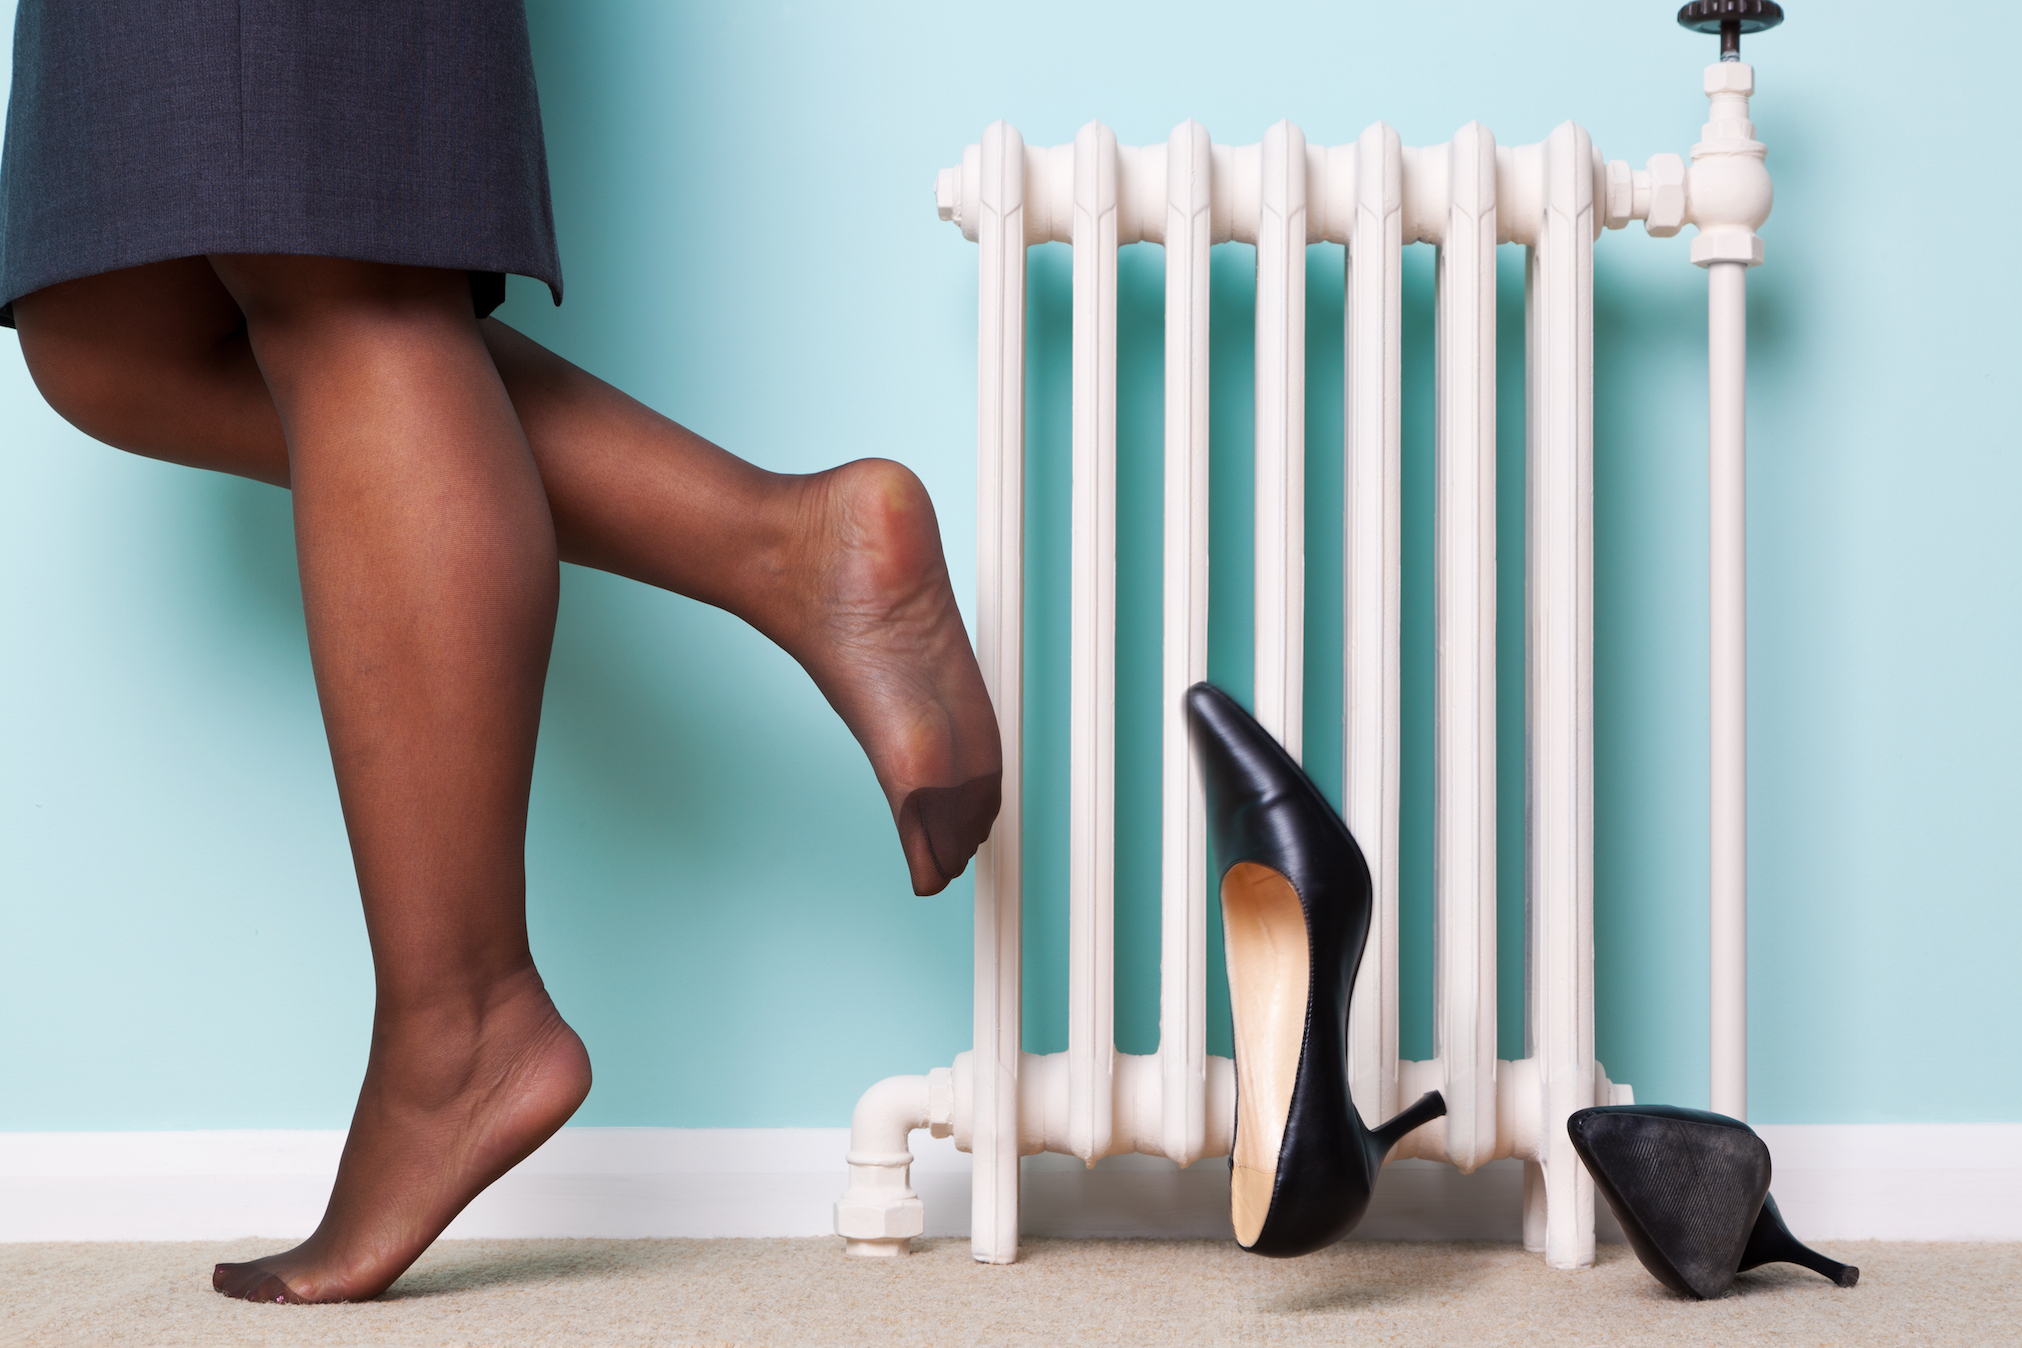 A recent study reveals how using less plastic, getting rid of your carpet, and even taking off your shoes as soon as you get home can help reduce weight gain associated with obesogens.